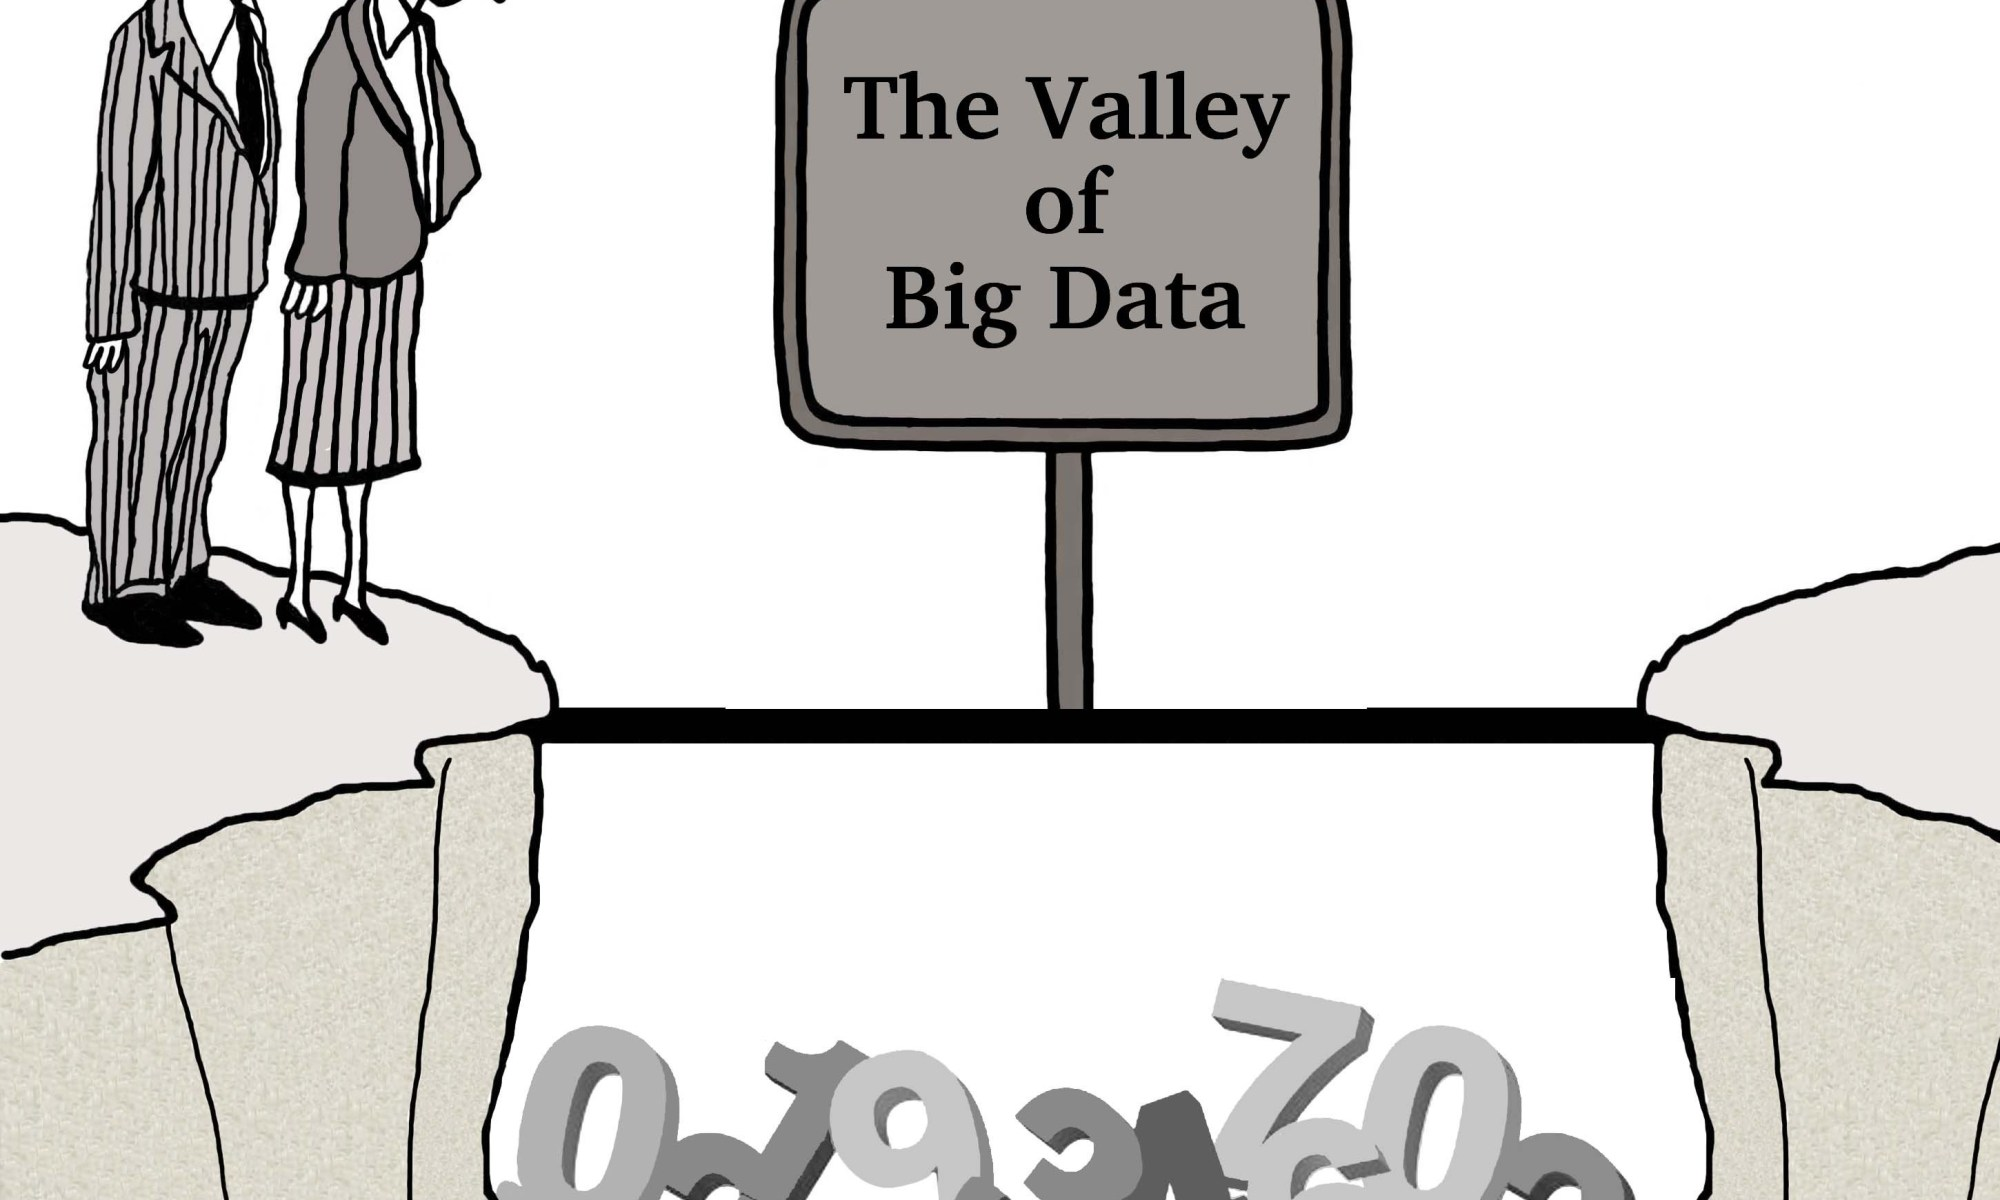 Cartoon showing people considering crossing the valley of big data